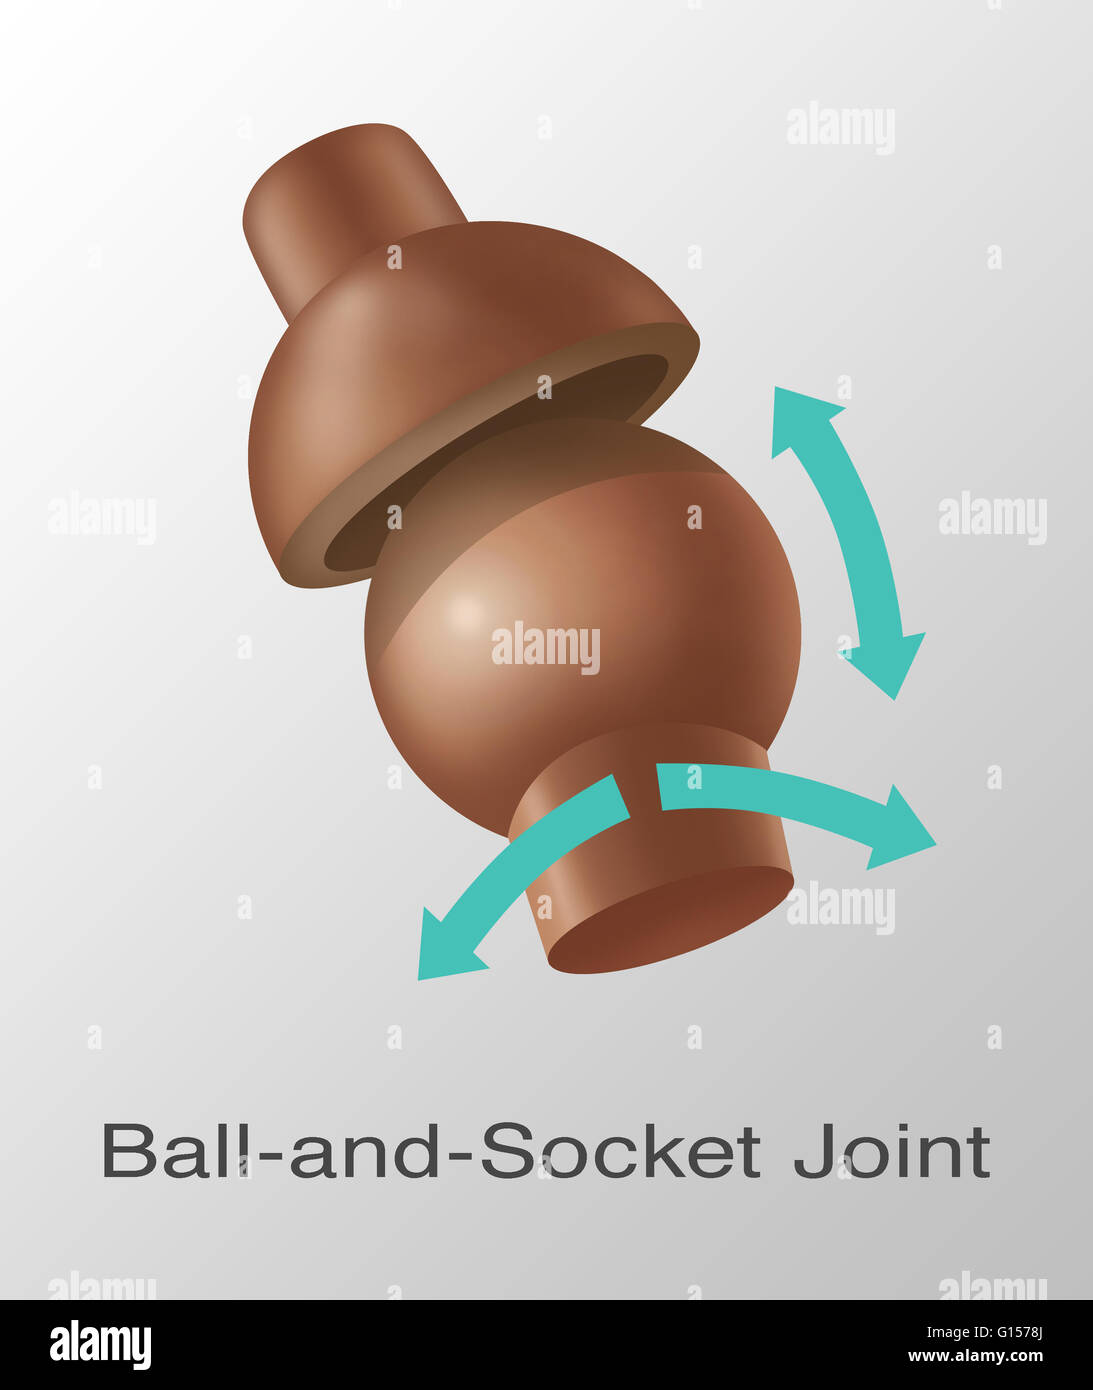 Ball And Socket Joint Stock Photos Ball And Socket Joint Stock